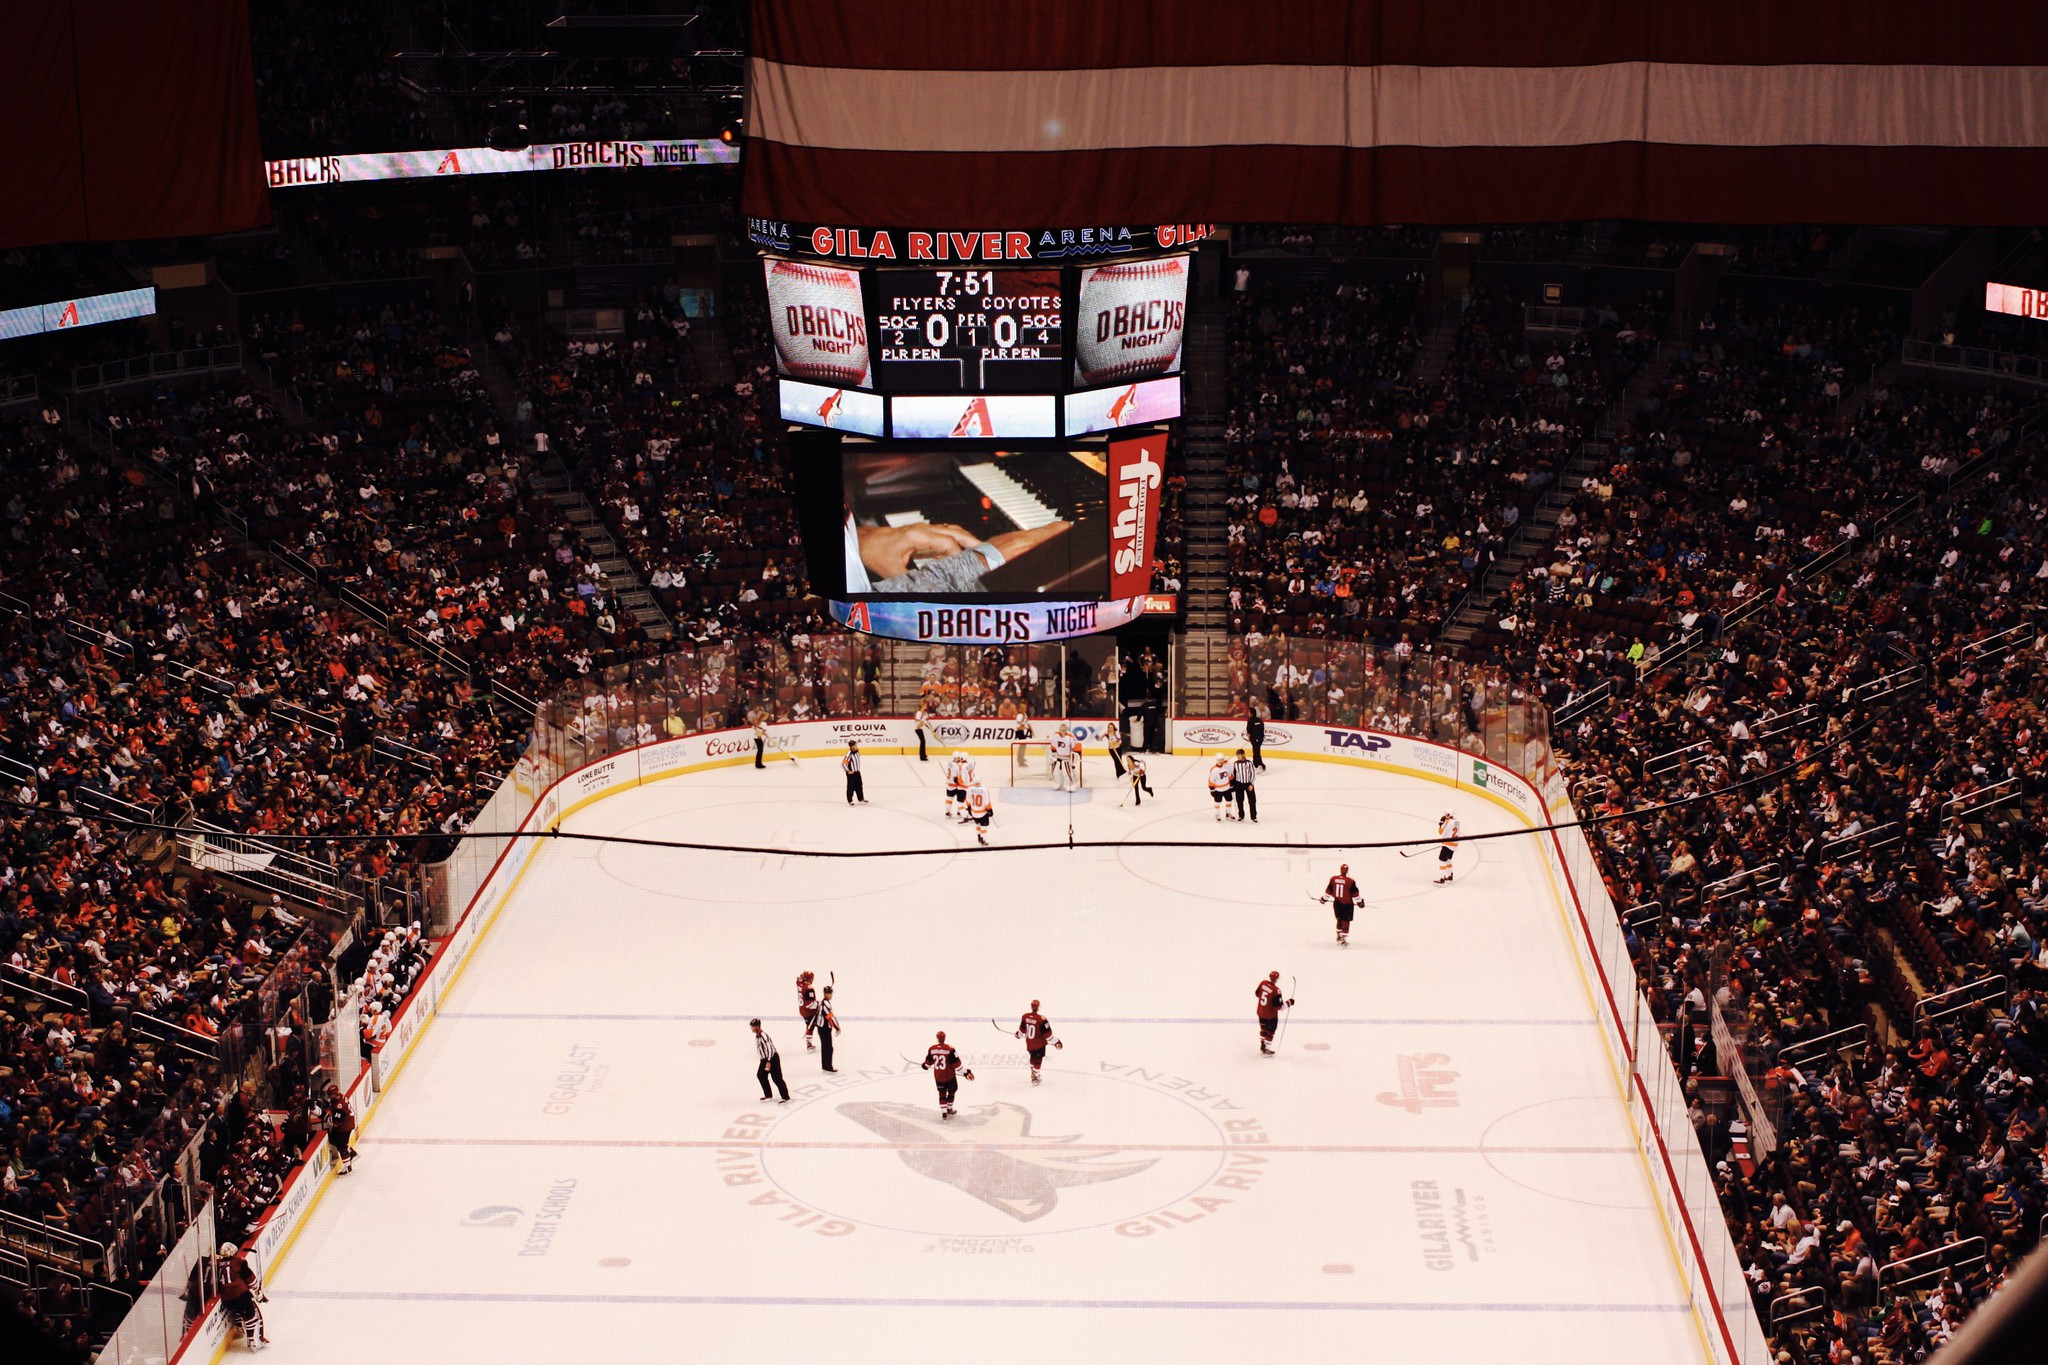 Arizona Coyotes vs. Philly Flyers @ Gila River Arena